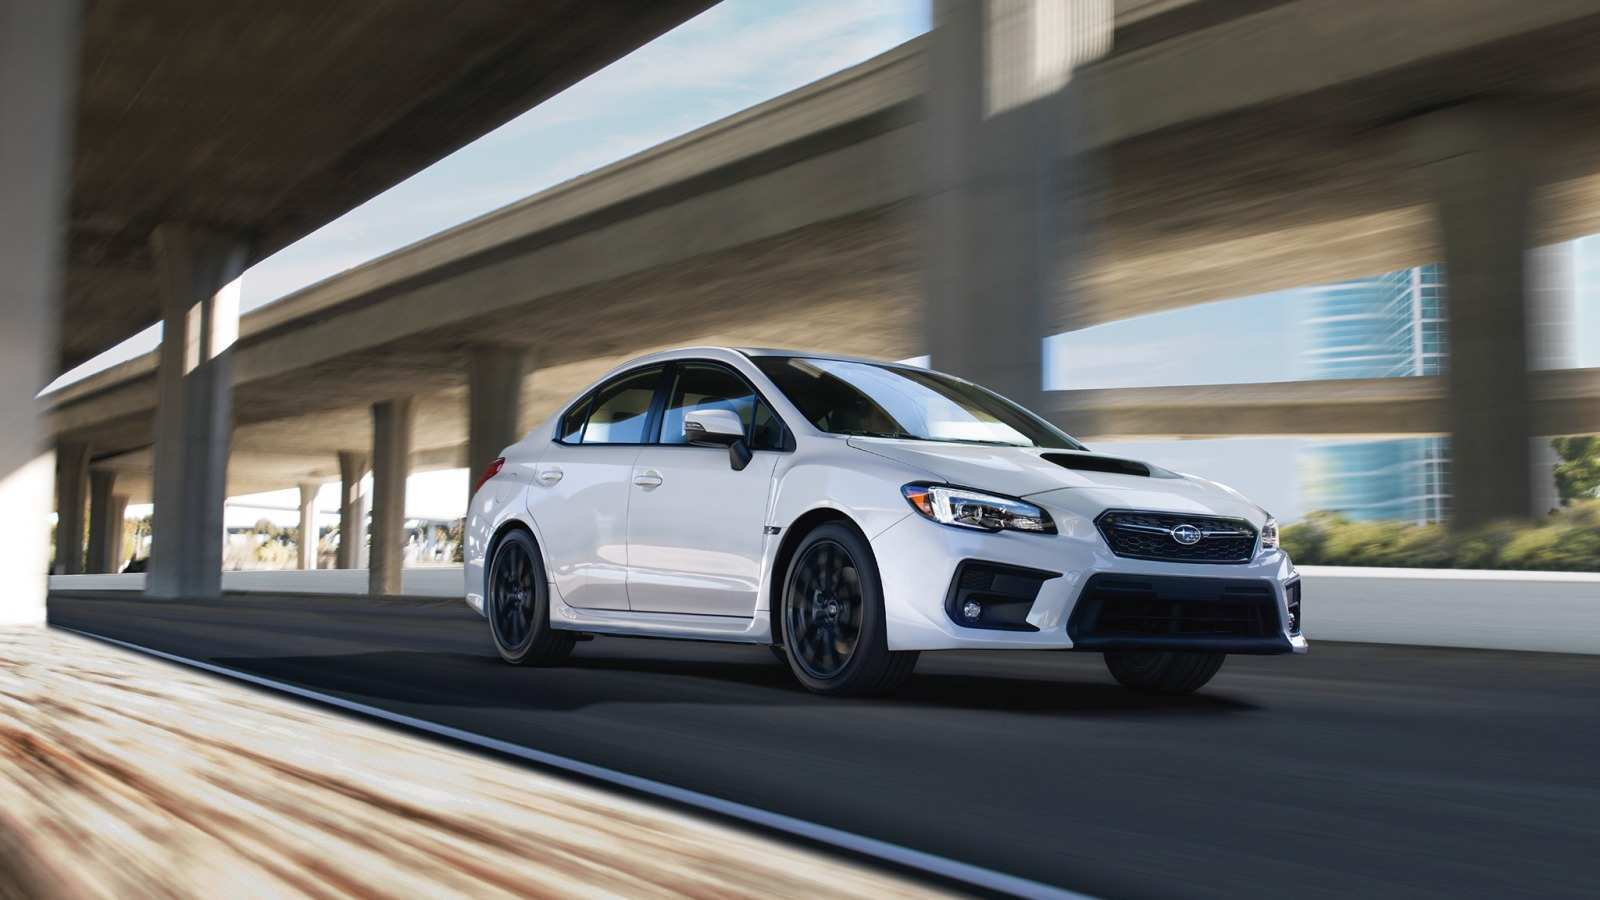 75 Gallery of The 2019 Subaru Wrx Quarter Mile Price And Review History by The 2019 Subaru Wrx Quarter Mile Price And Review